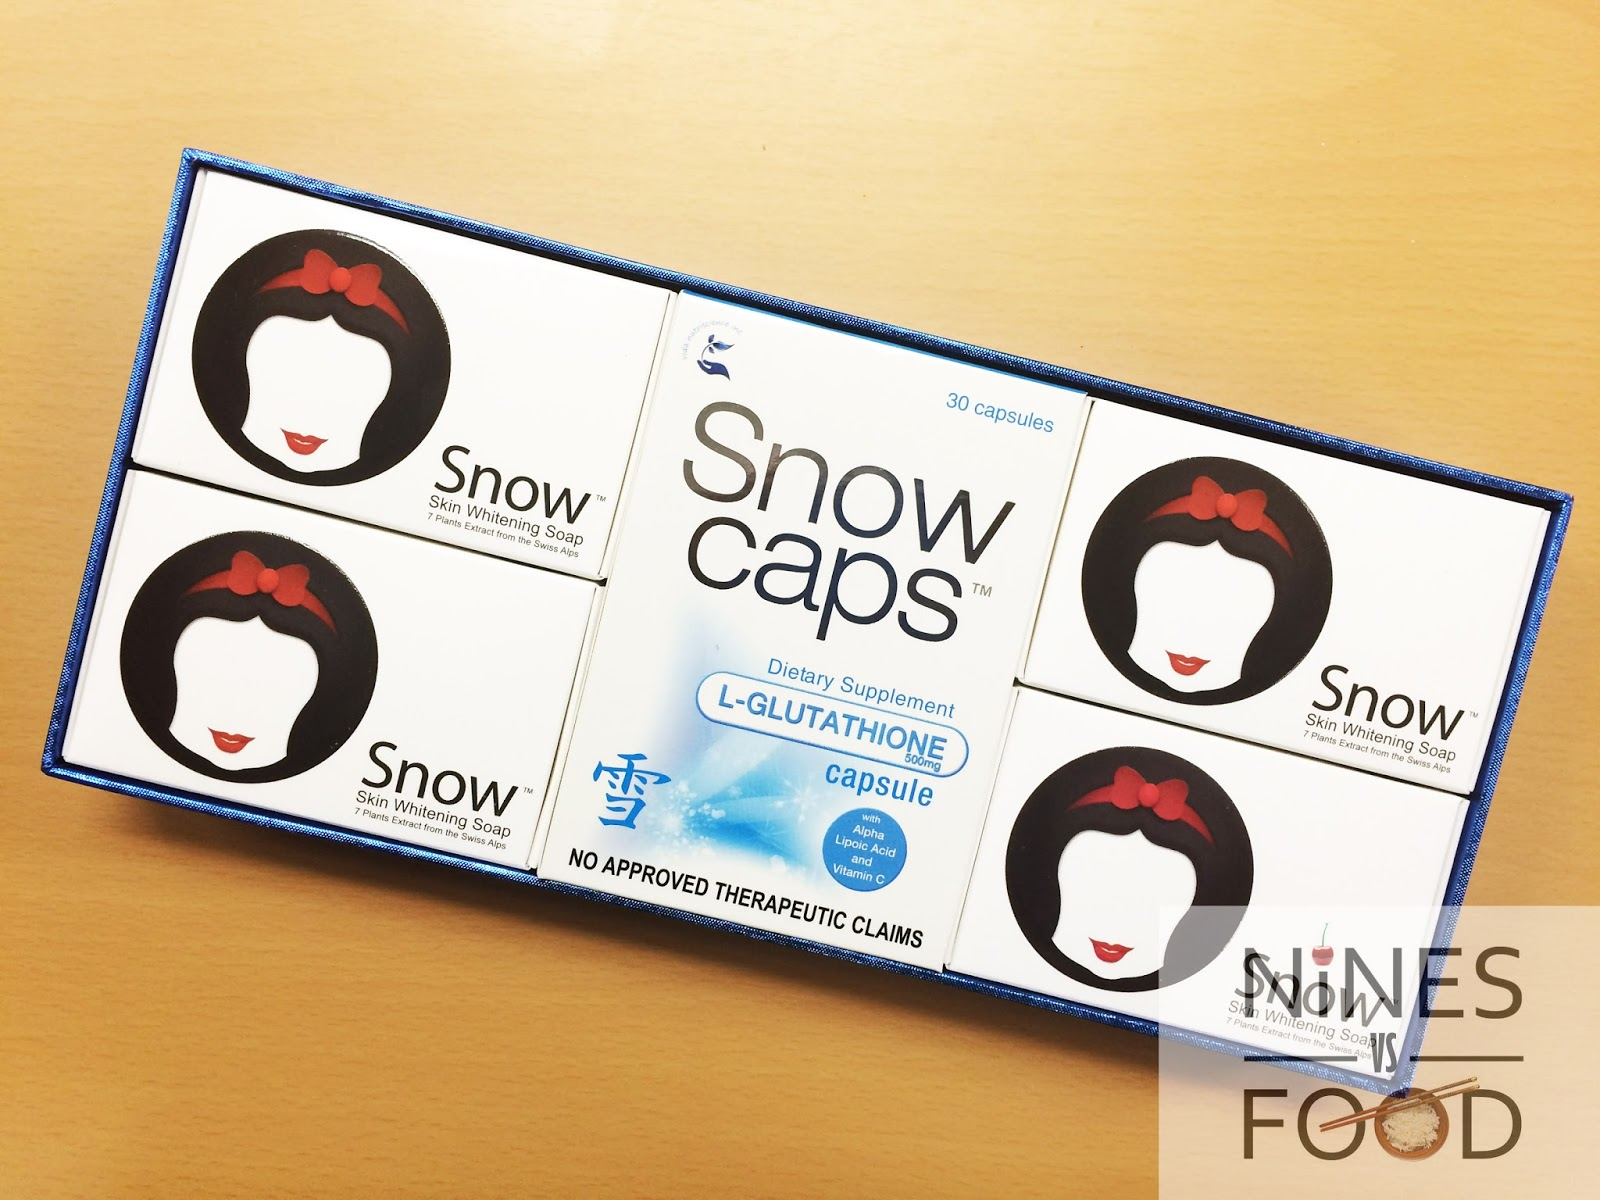 My Snow Caps Review: The Effects Of Taking Snow Caps Oral